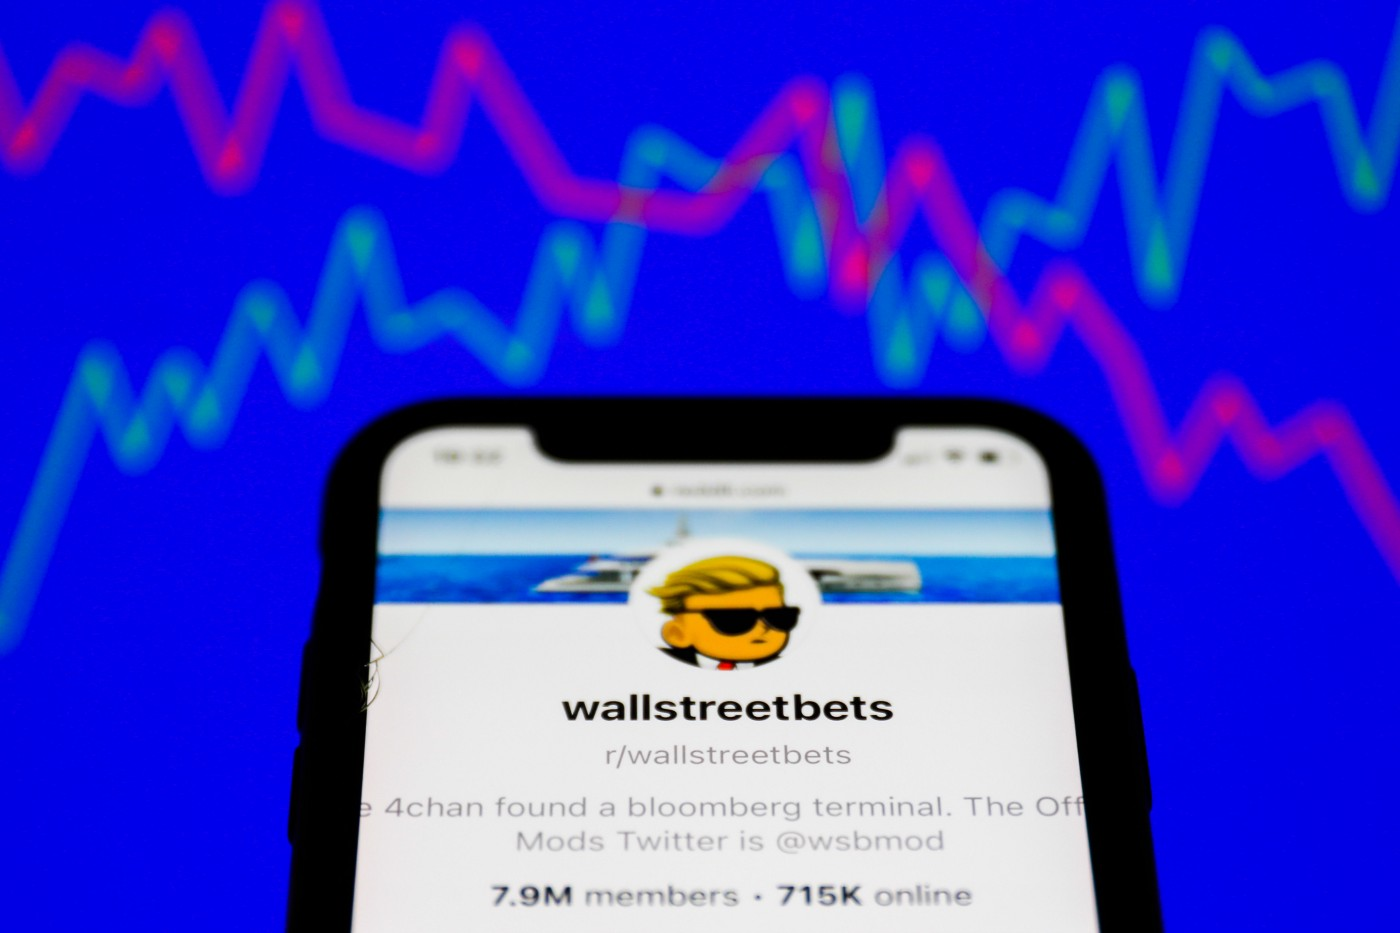 WallStreetBets forum on the Reddit displayed on a phone screen and a illustrative stock chart in the background